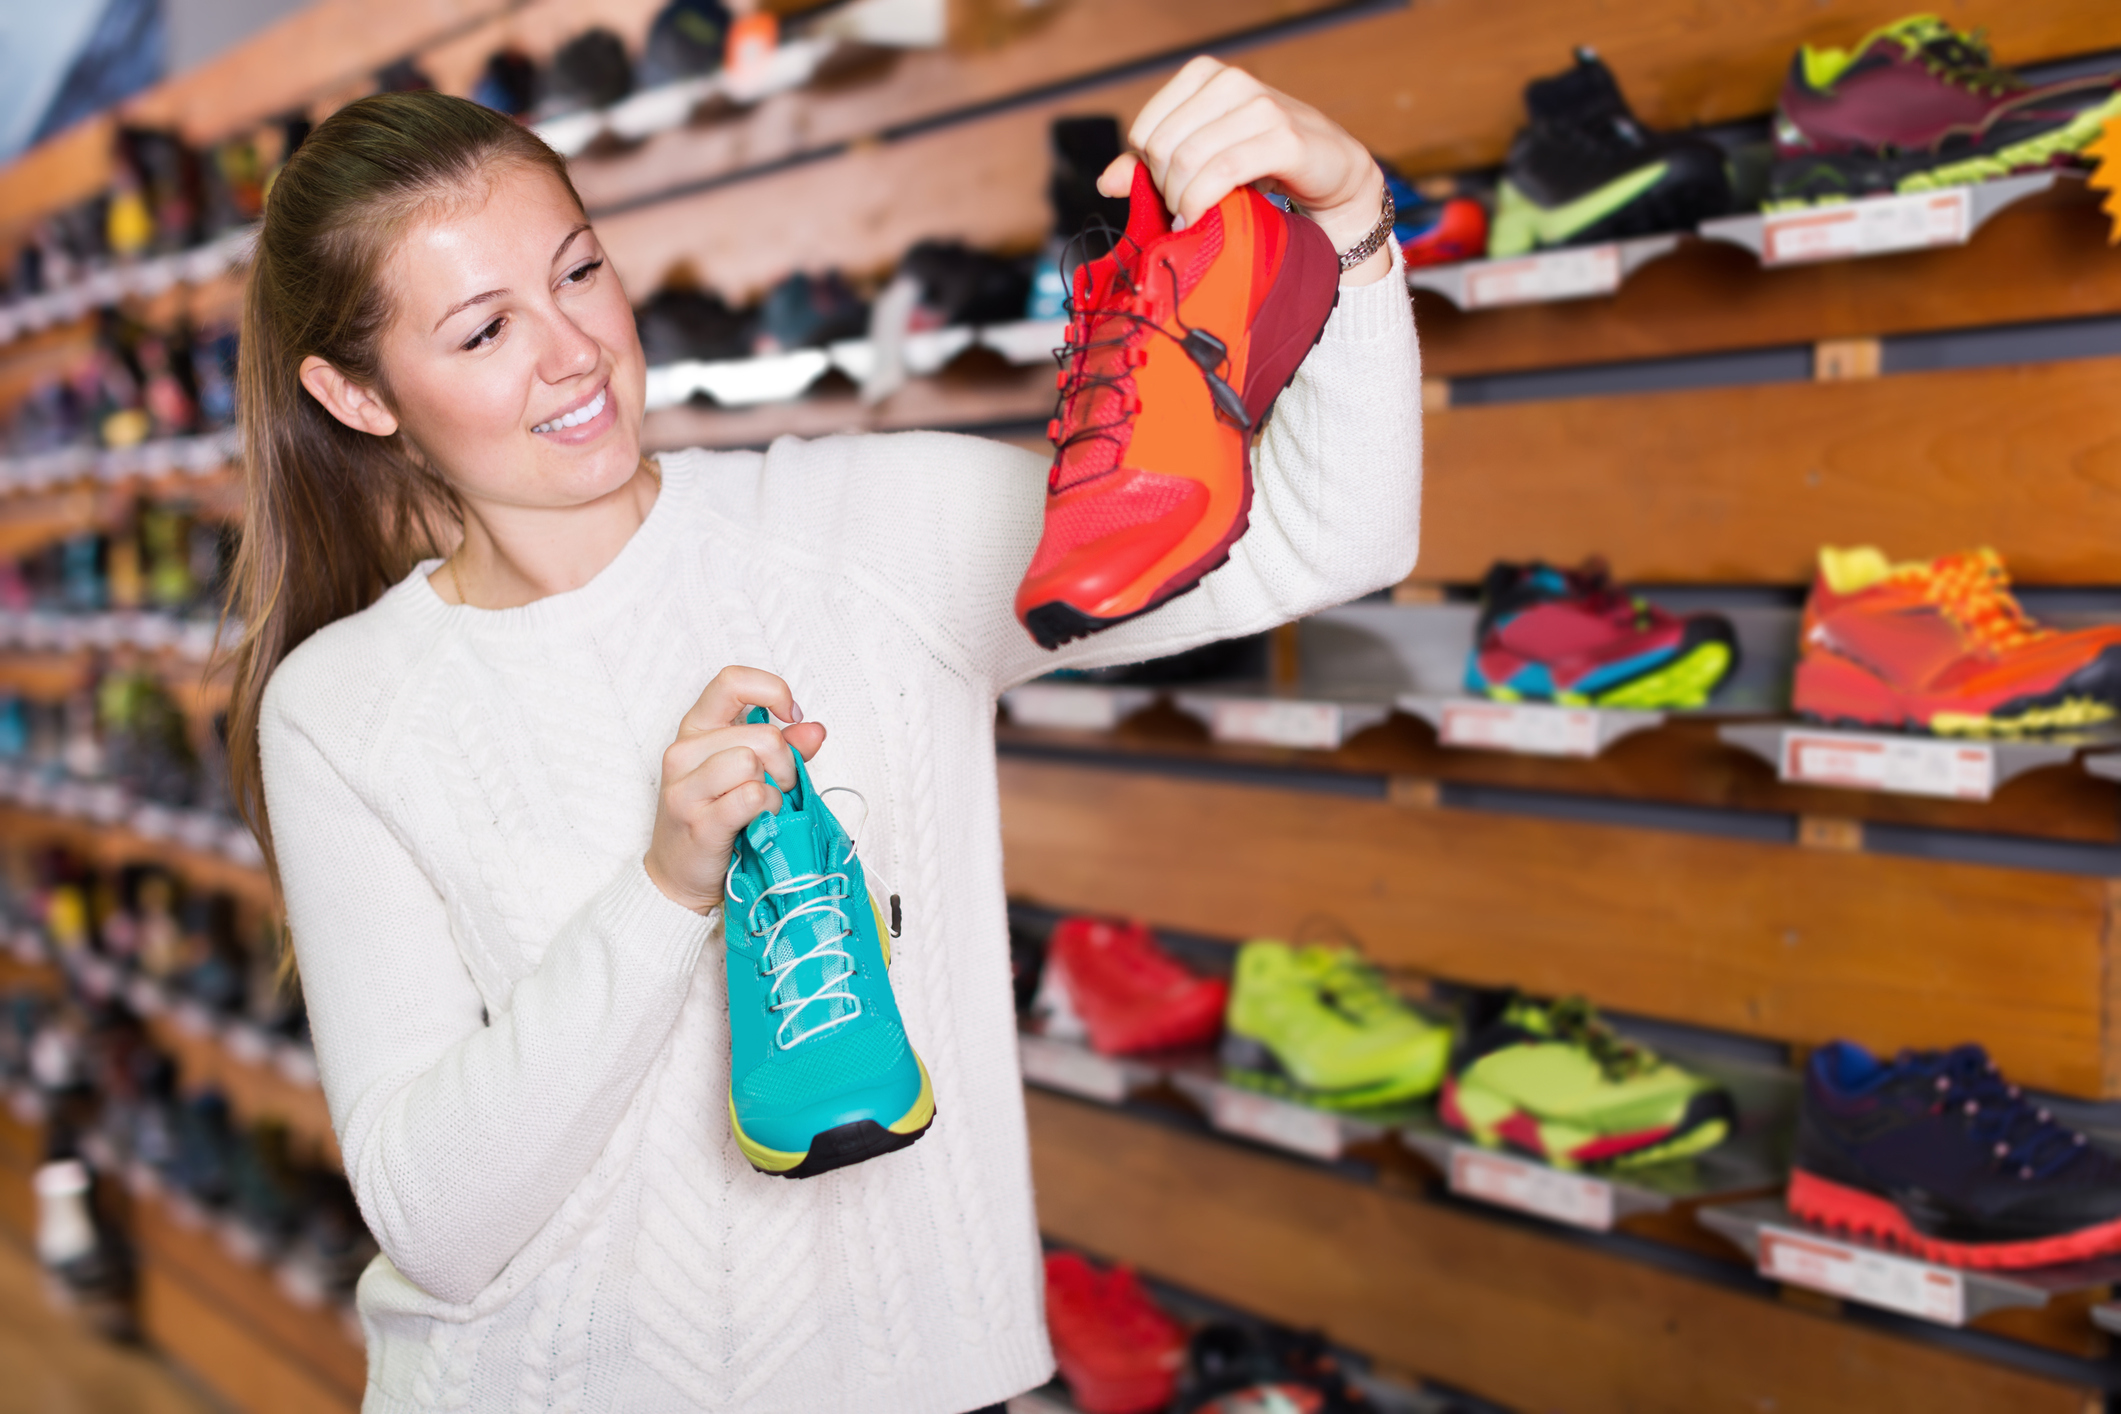 Young girl chooses clothes or shoes in sports shop (Thinkstock/PA)